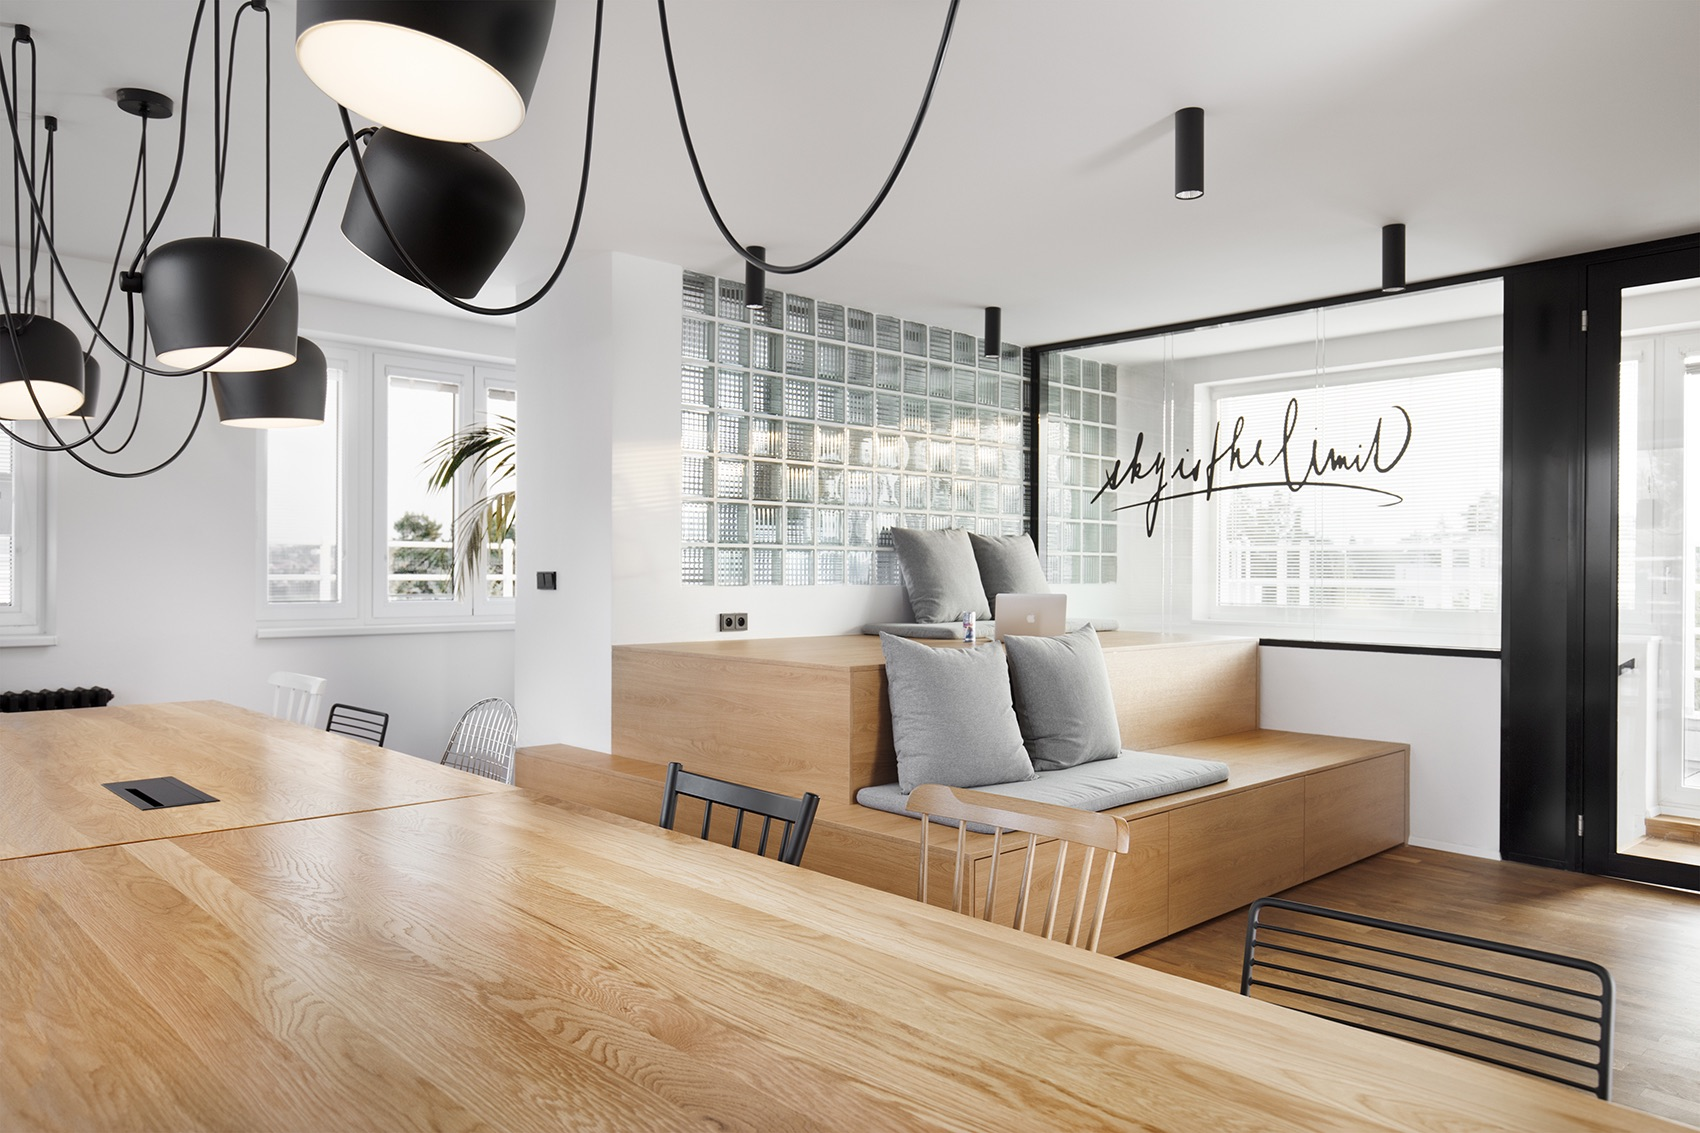 redbull-prague-office-13